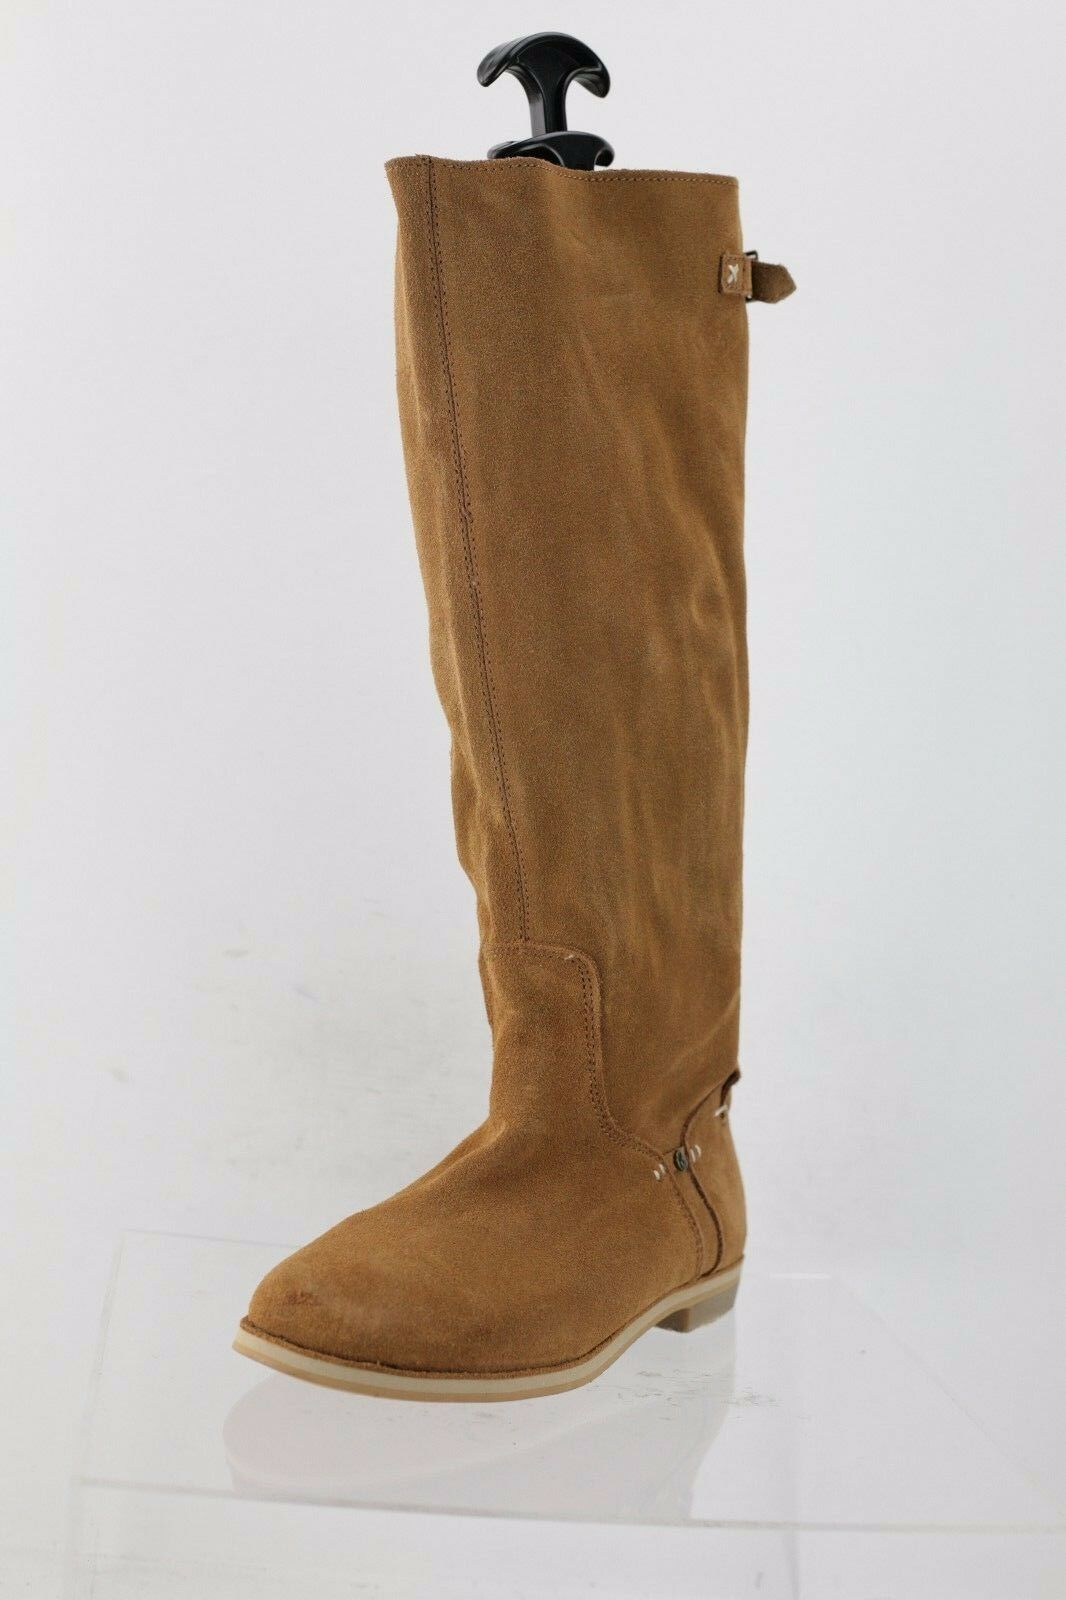 Women's Reef High Desert Style Knee High Boots shoesSize 6 M RTL  NEW